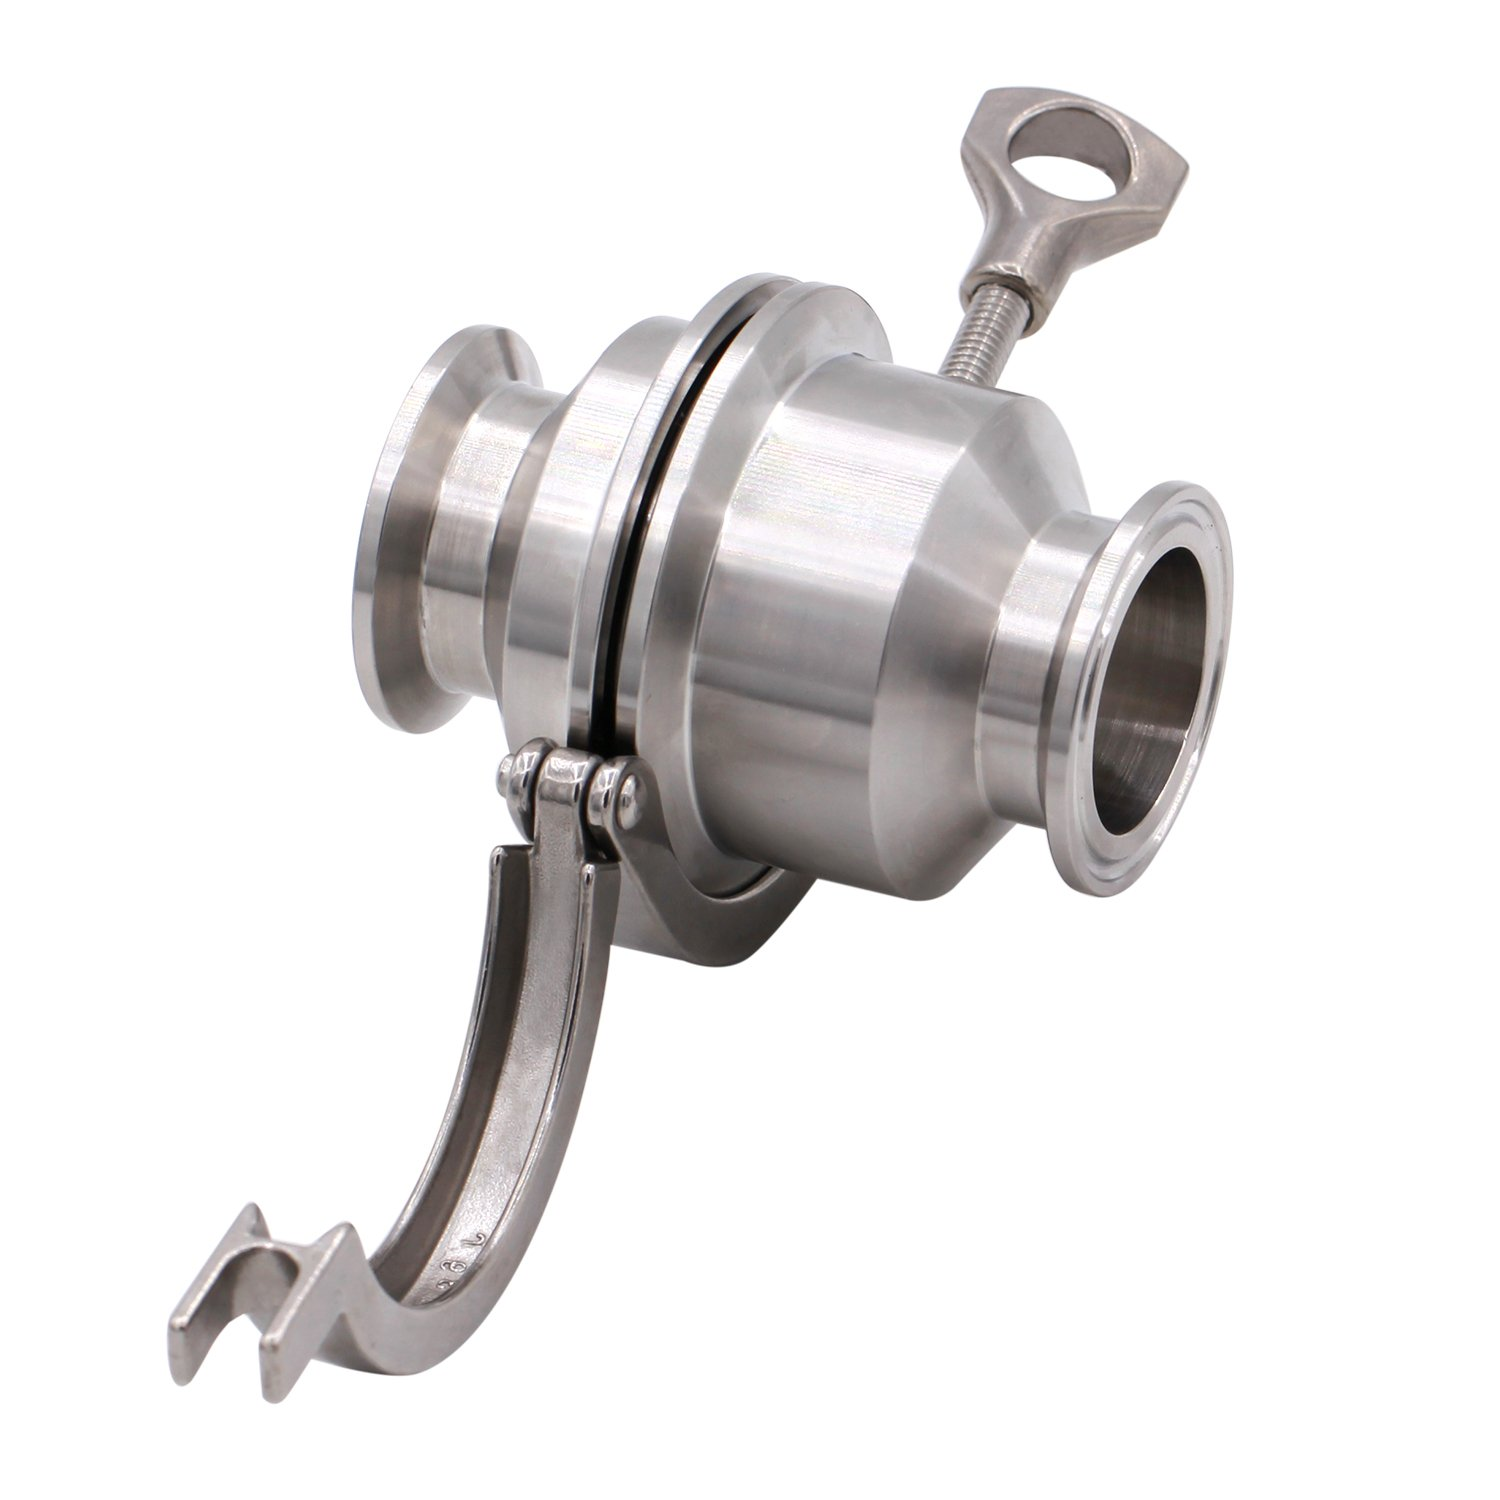 Dernord Sanitary Check Valve - One Way Flow - 1.5'' Tri Clamp Style, Stainless Steel 304, Viton Gasket (1.5'' Tri Clamp Check Valve)